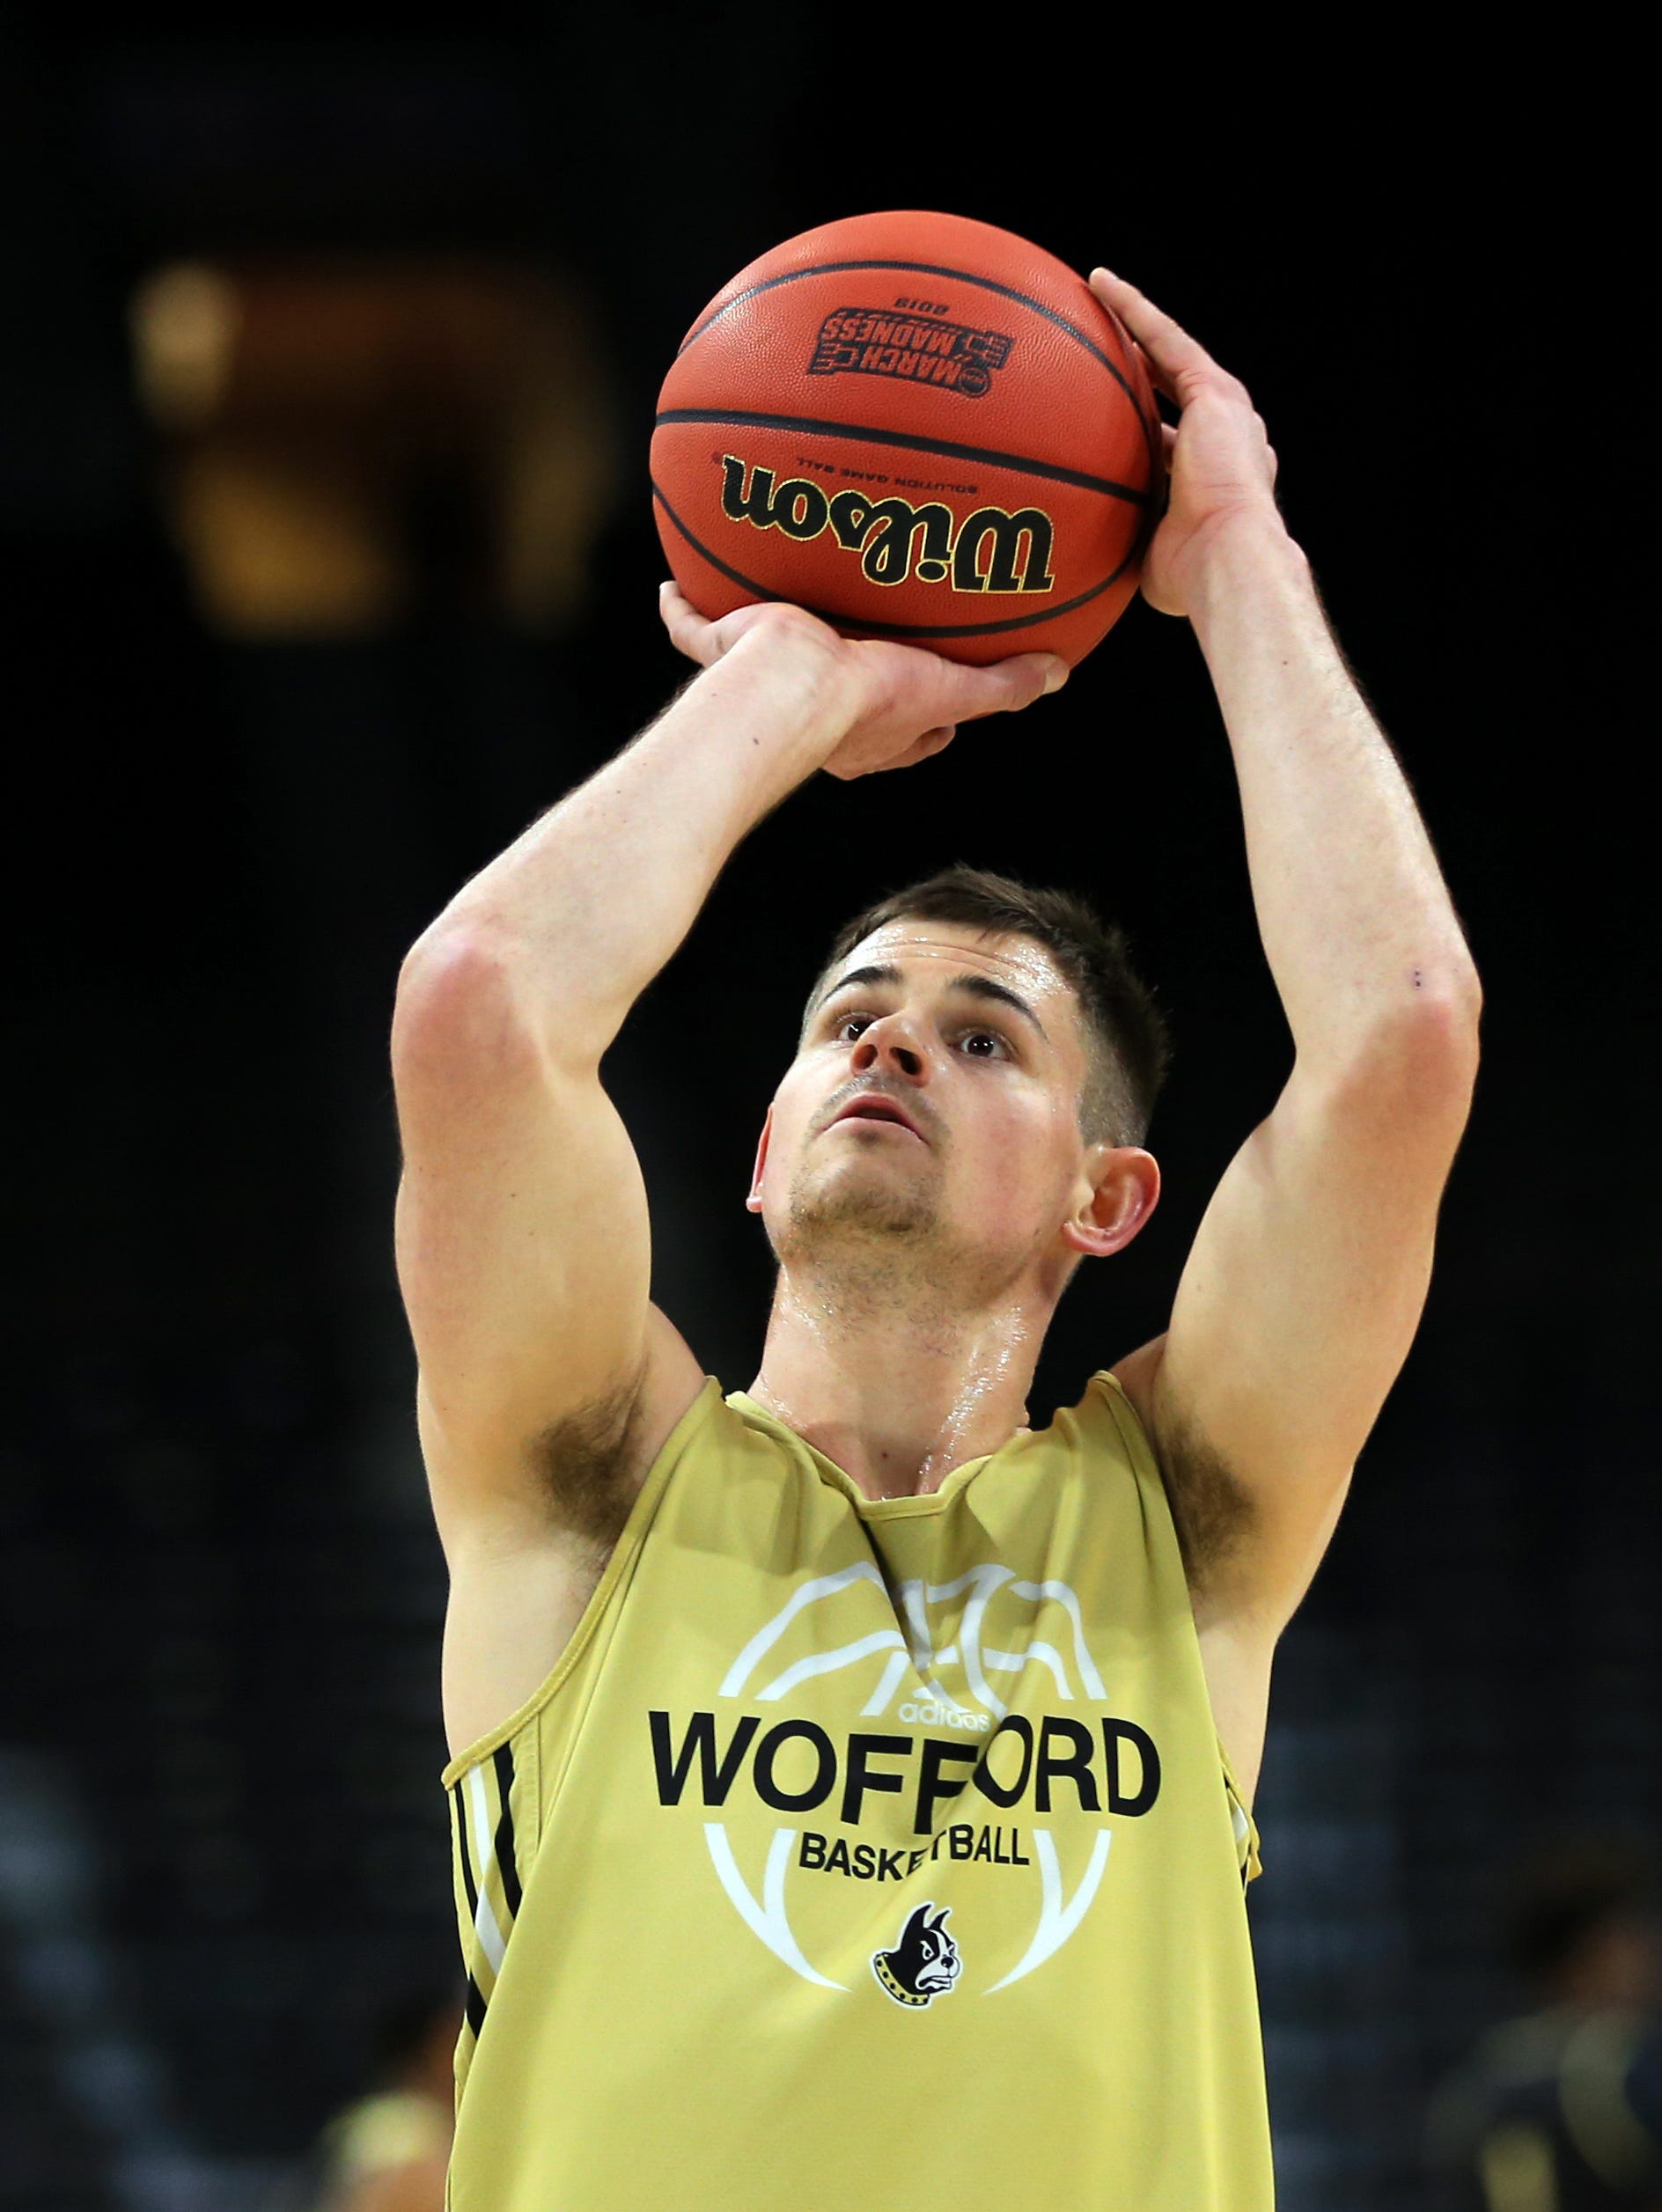 Meet Wofford's version of Steph Curry, and he's about to make NCAA three-point history